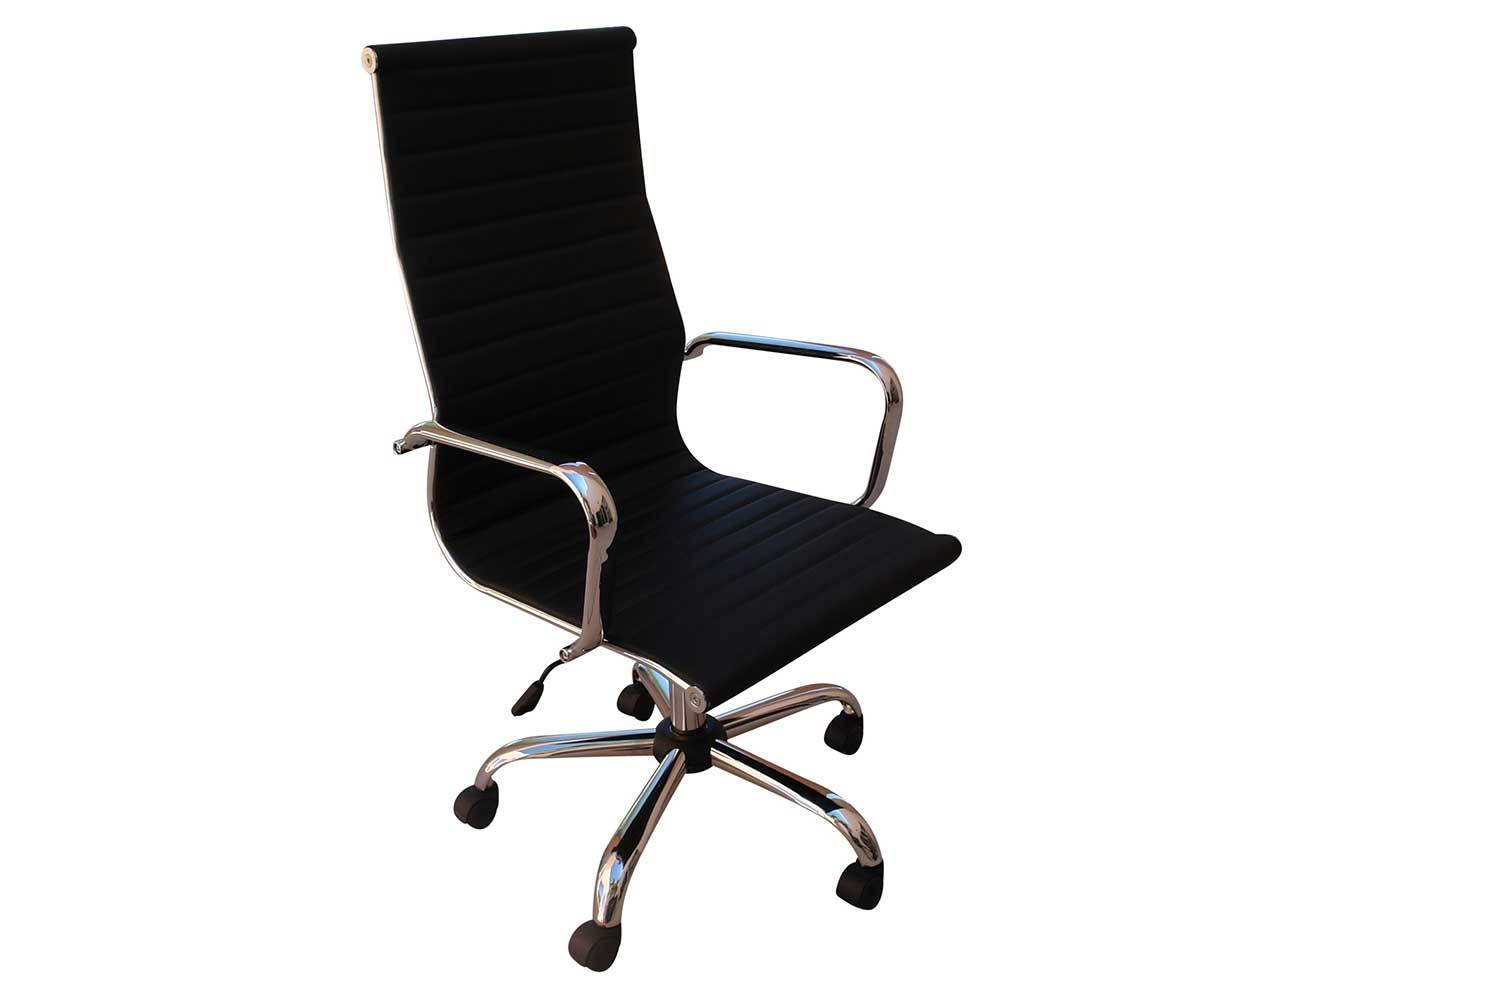 Black Leather High Back Chair 5138